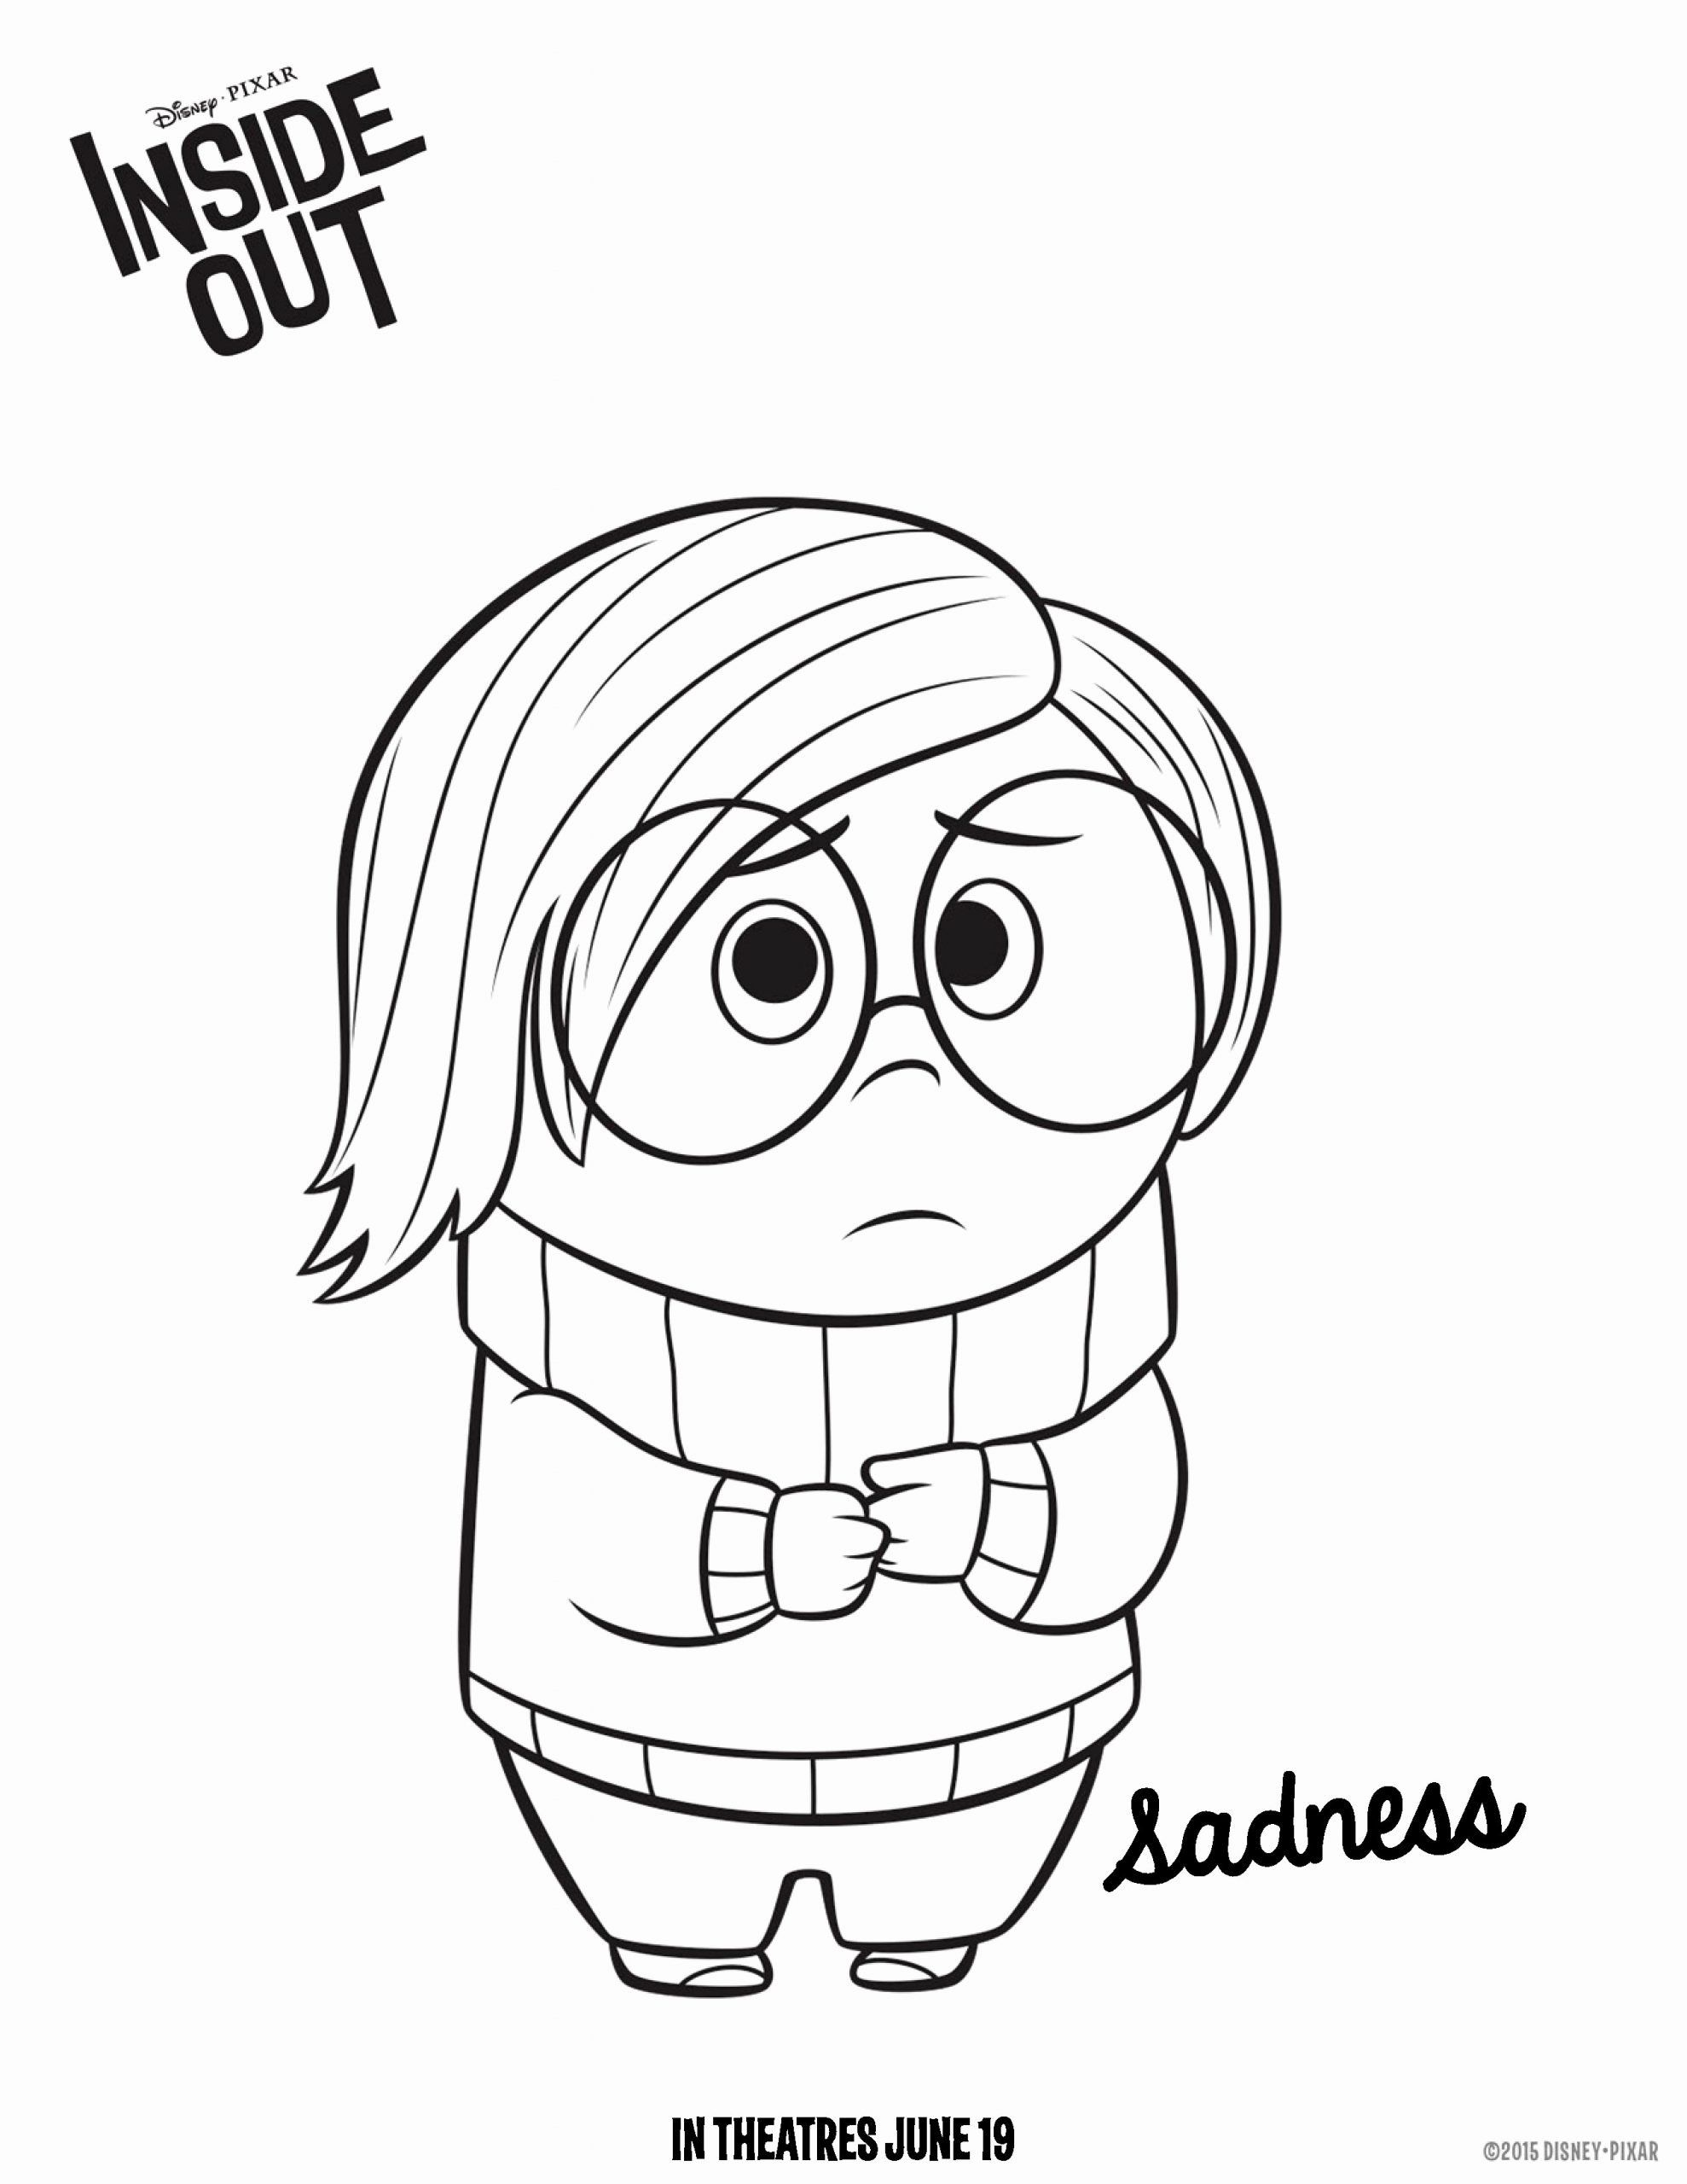 Inside Out Coloring Page Beautiful Inside Out Sadness Coloring Pages Inside Out Coloring Pages Coloring Pages Coloring Pages For Kids